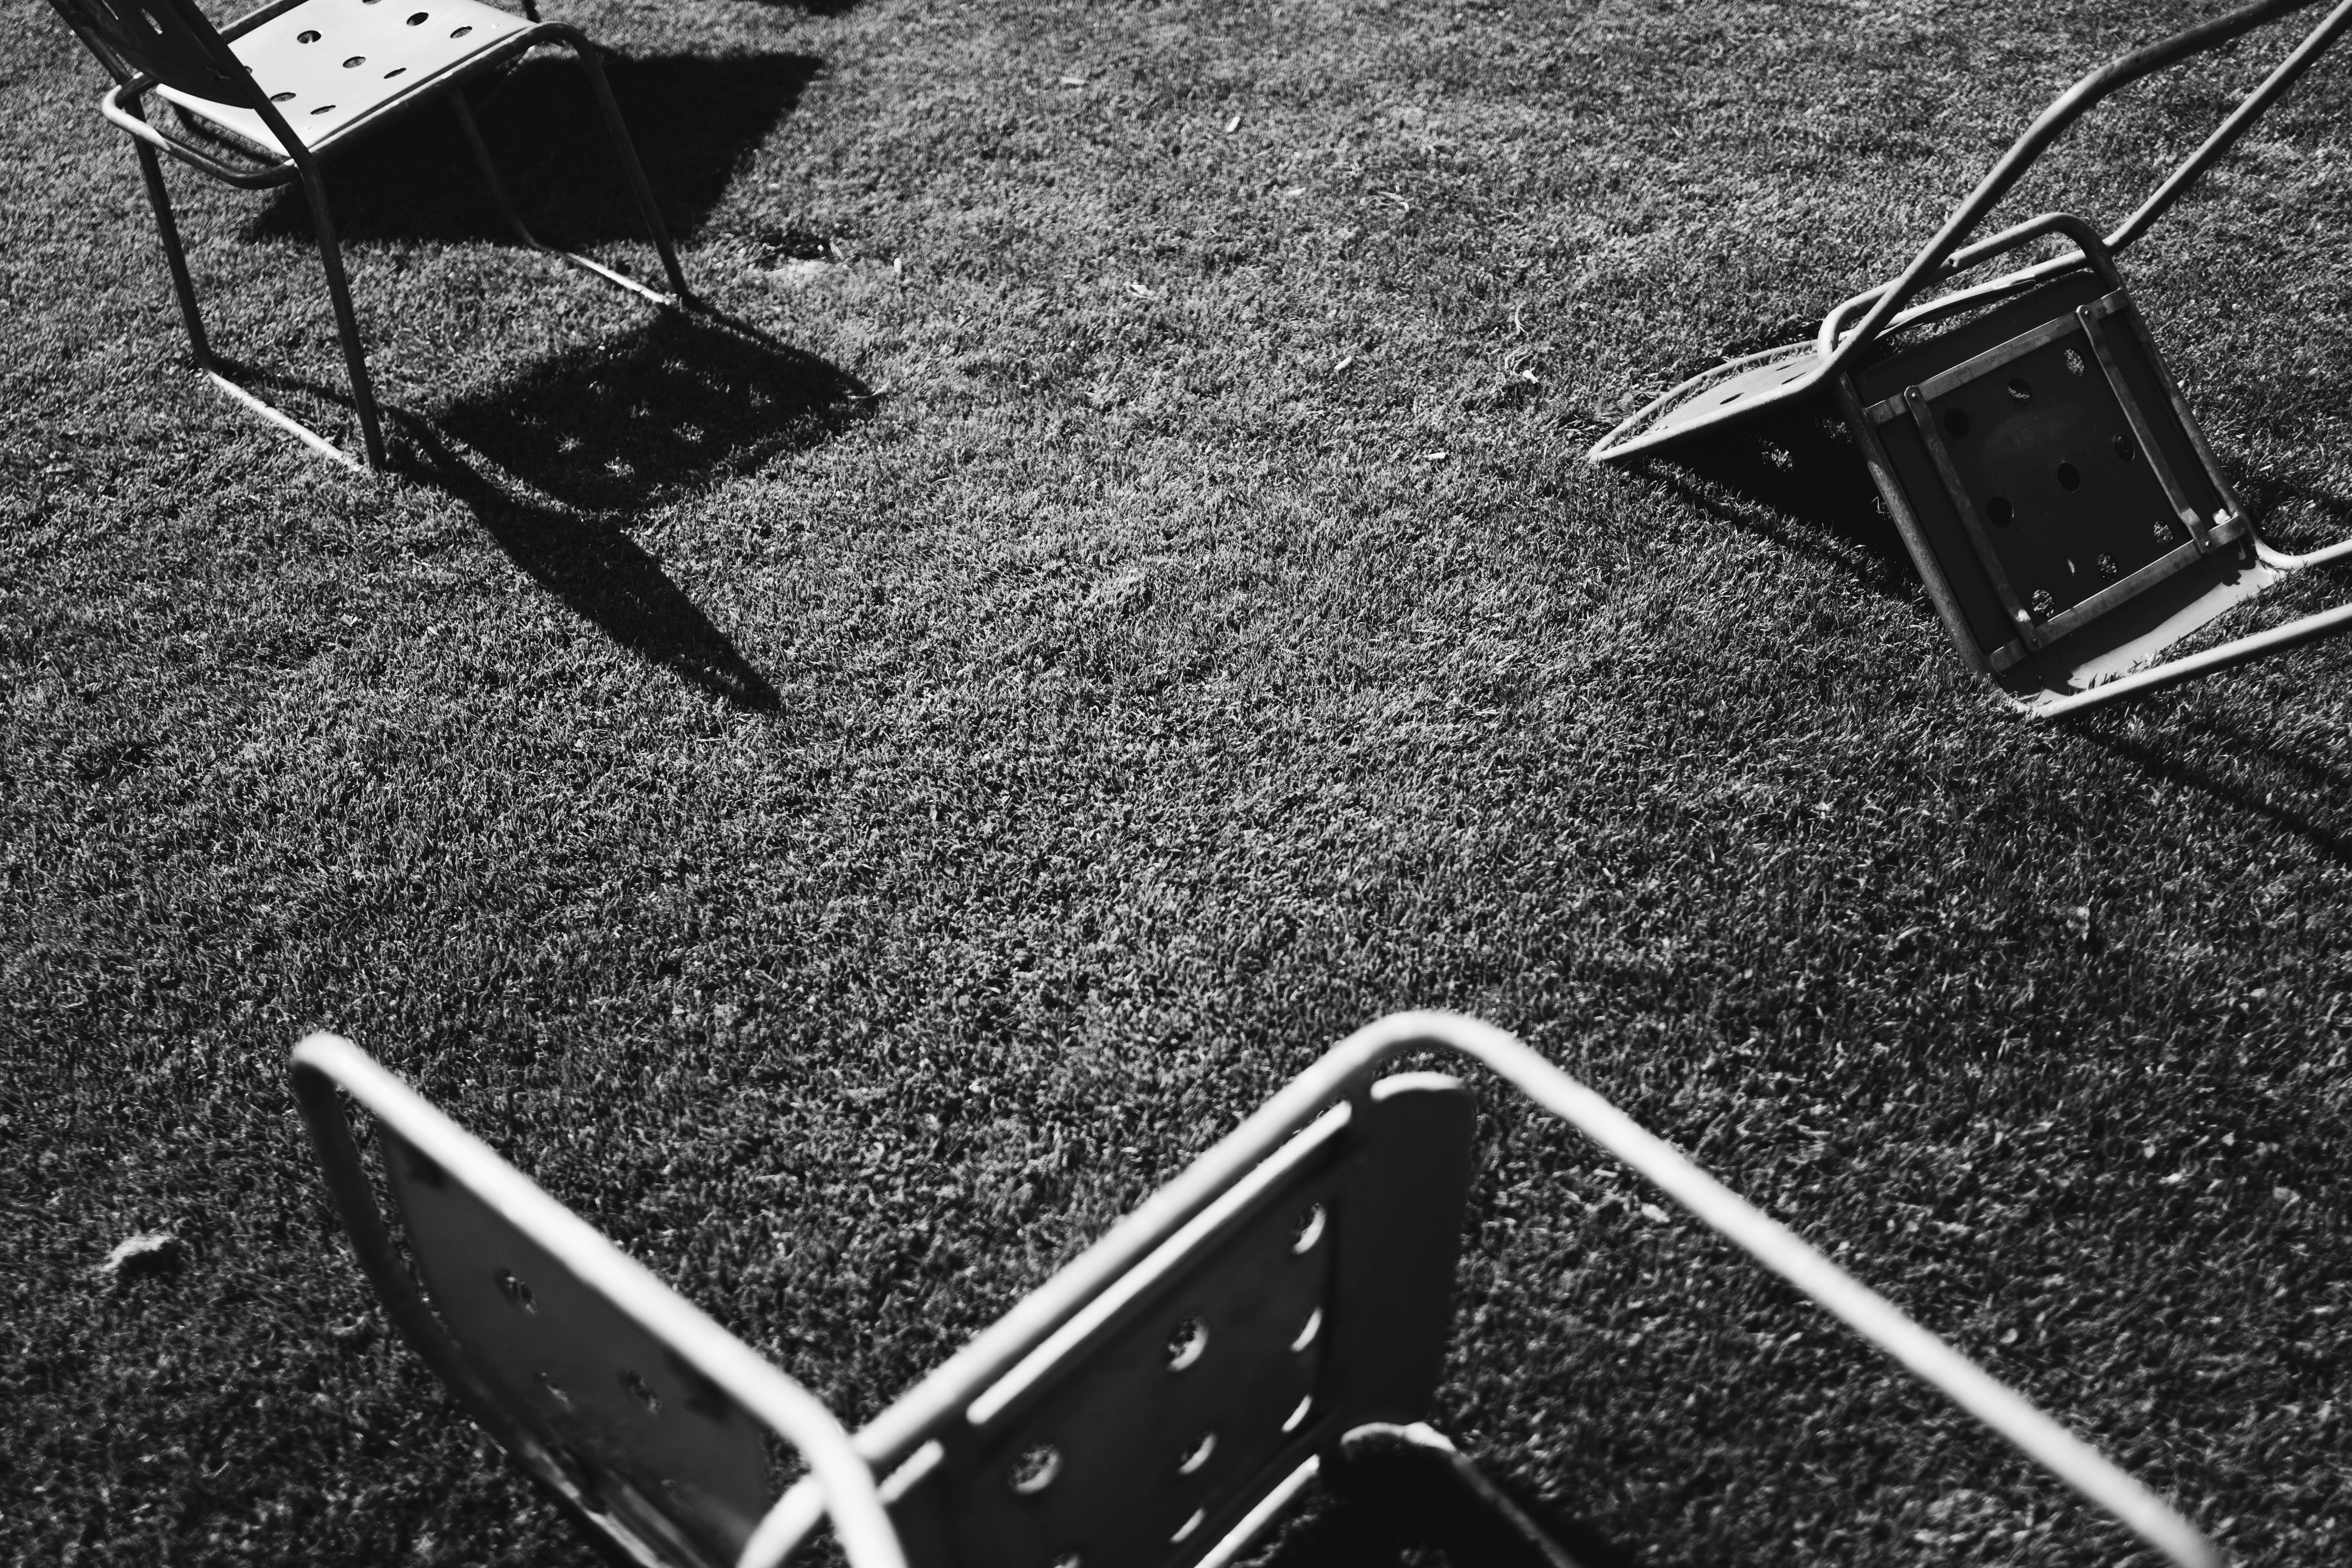 Black and white photo of fallen chairs on grass with shadow